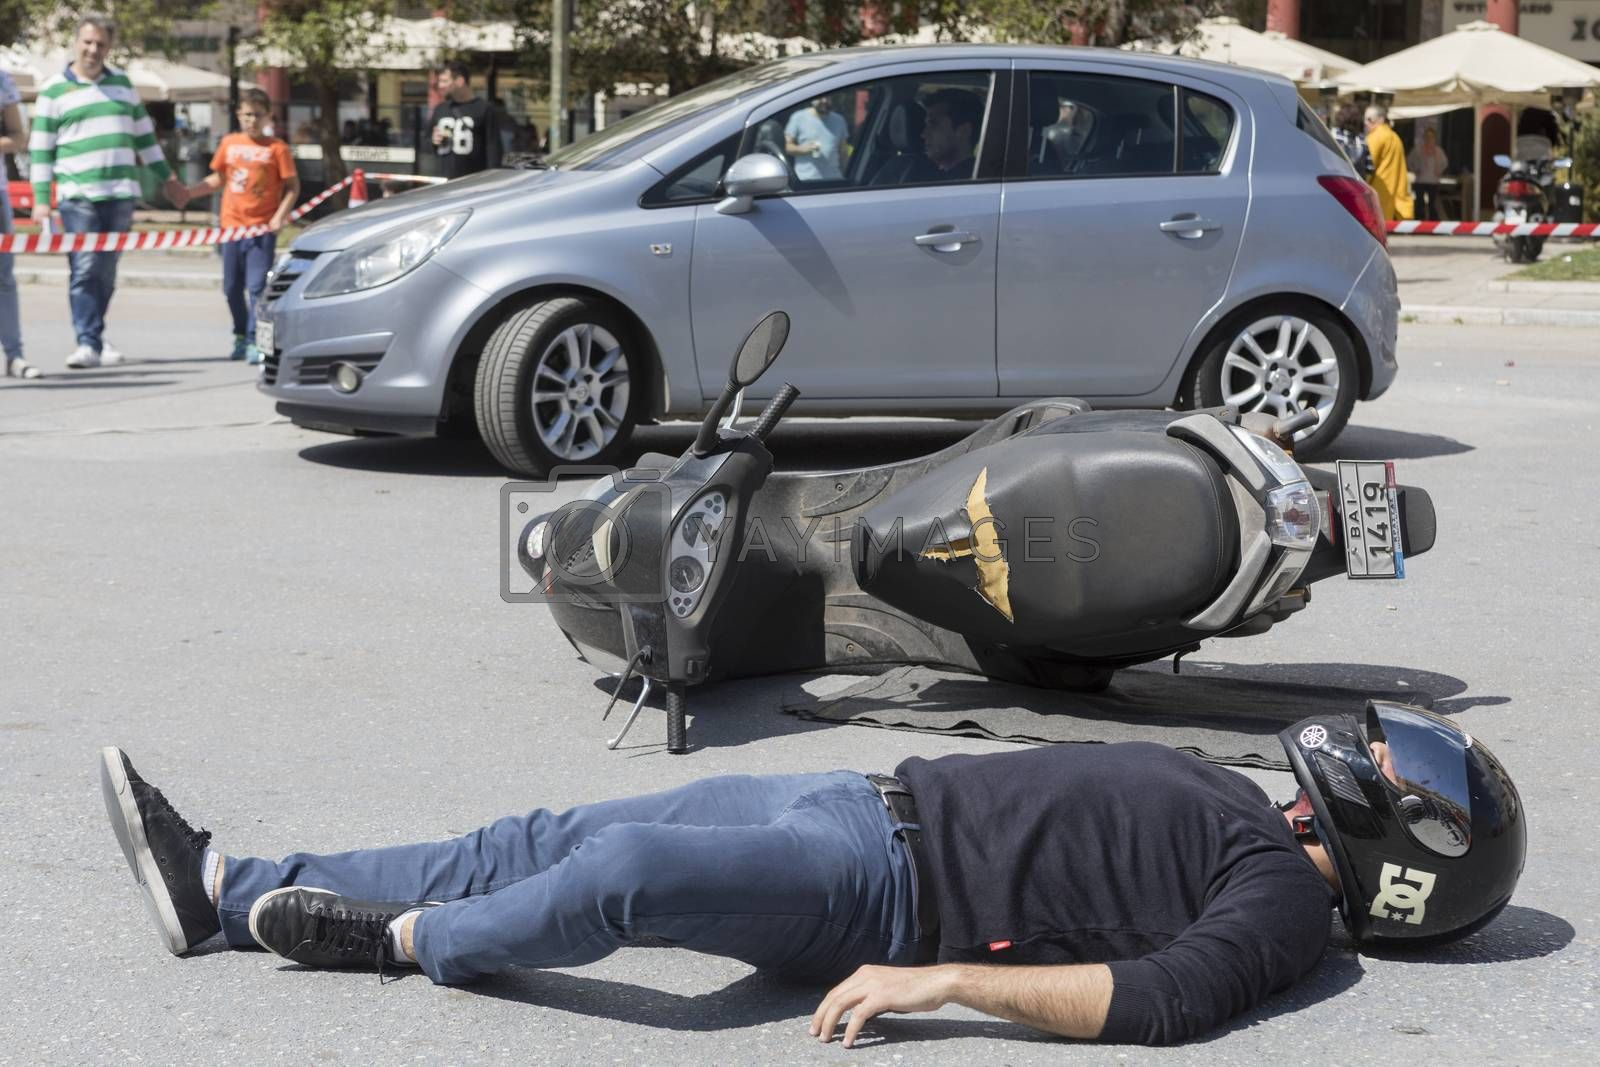 Thessaloniki , Greece - April 9, 2017: First aid, victim liberation in an car accident and helmet removal demonstration by the Hellenic Red Cross rescue team